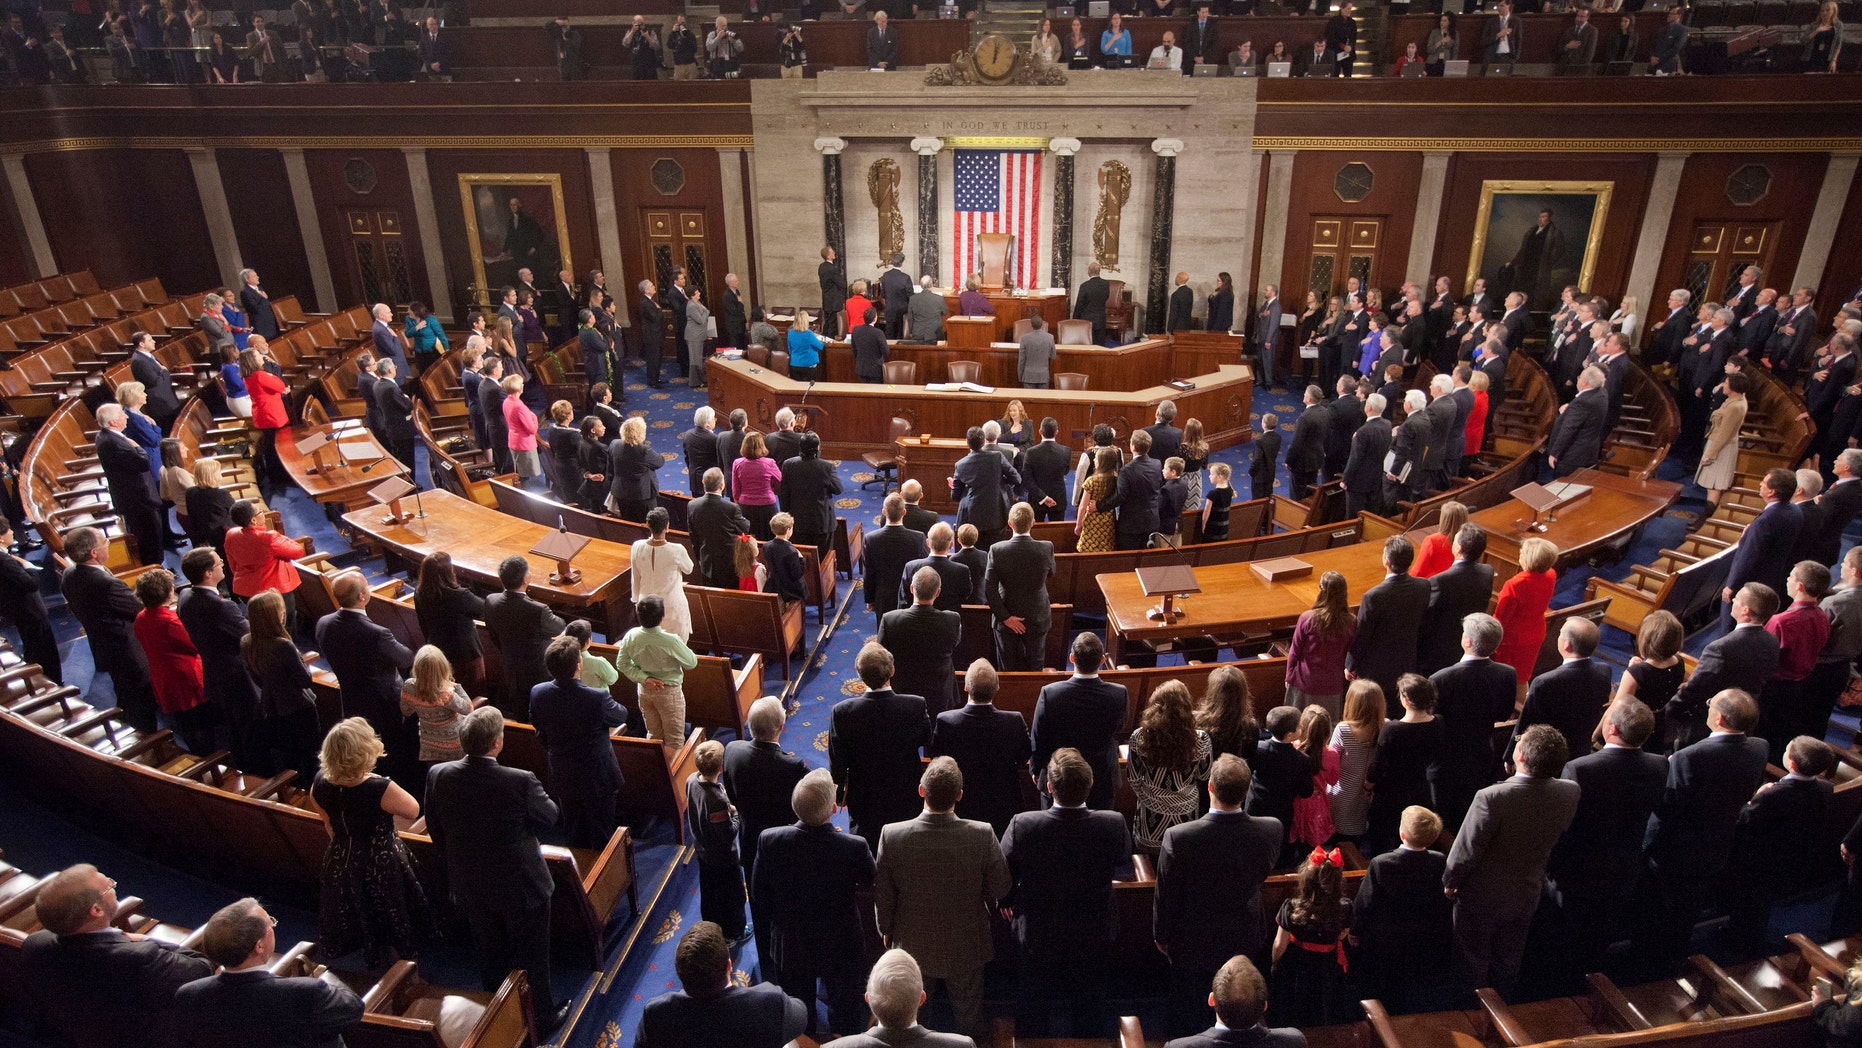 FILE --  Jan. 6, 2015: Members of the House of Representatives stand for the Pledge of Allegiance at the opening session of the 114th Congress, on Capitol Hill in Washington.